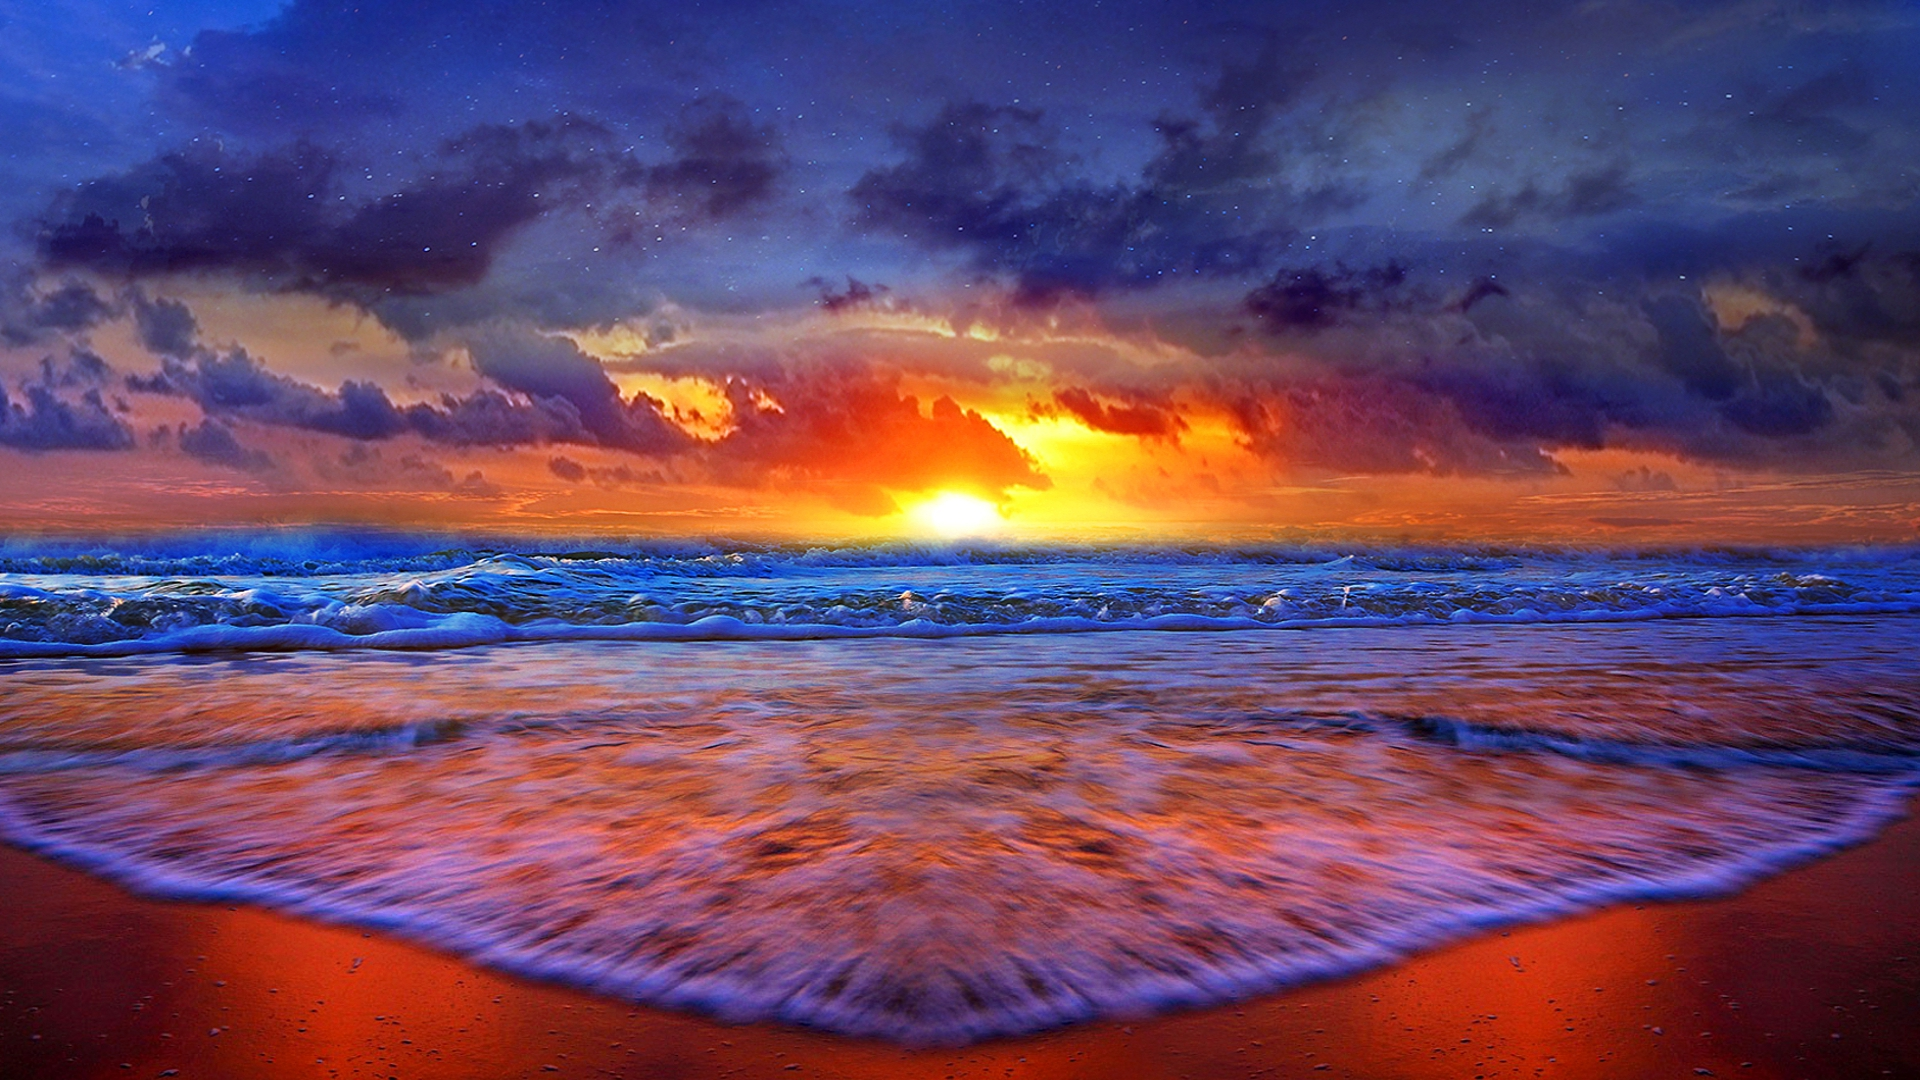 The Sunset Hd Desktop Background Word By Word